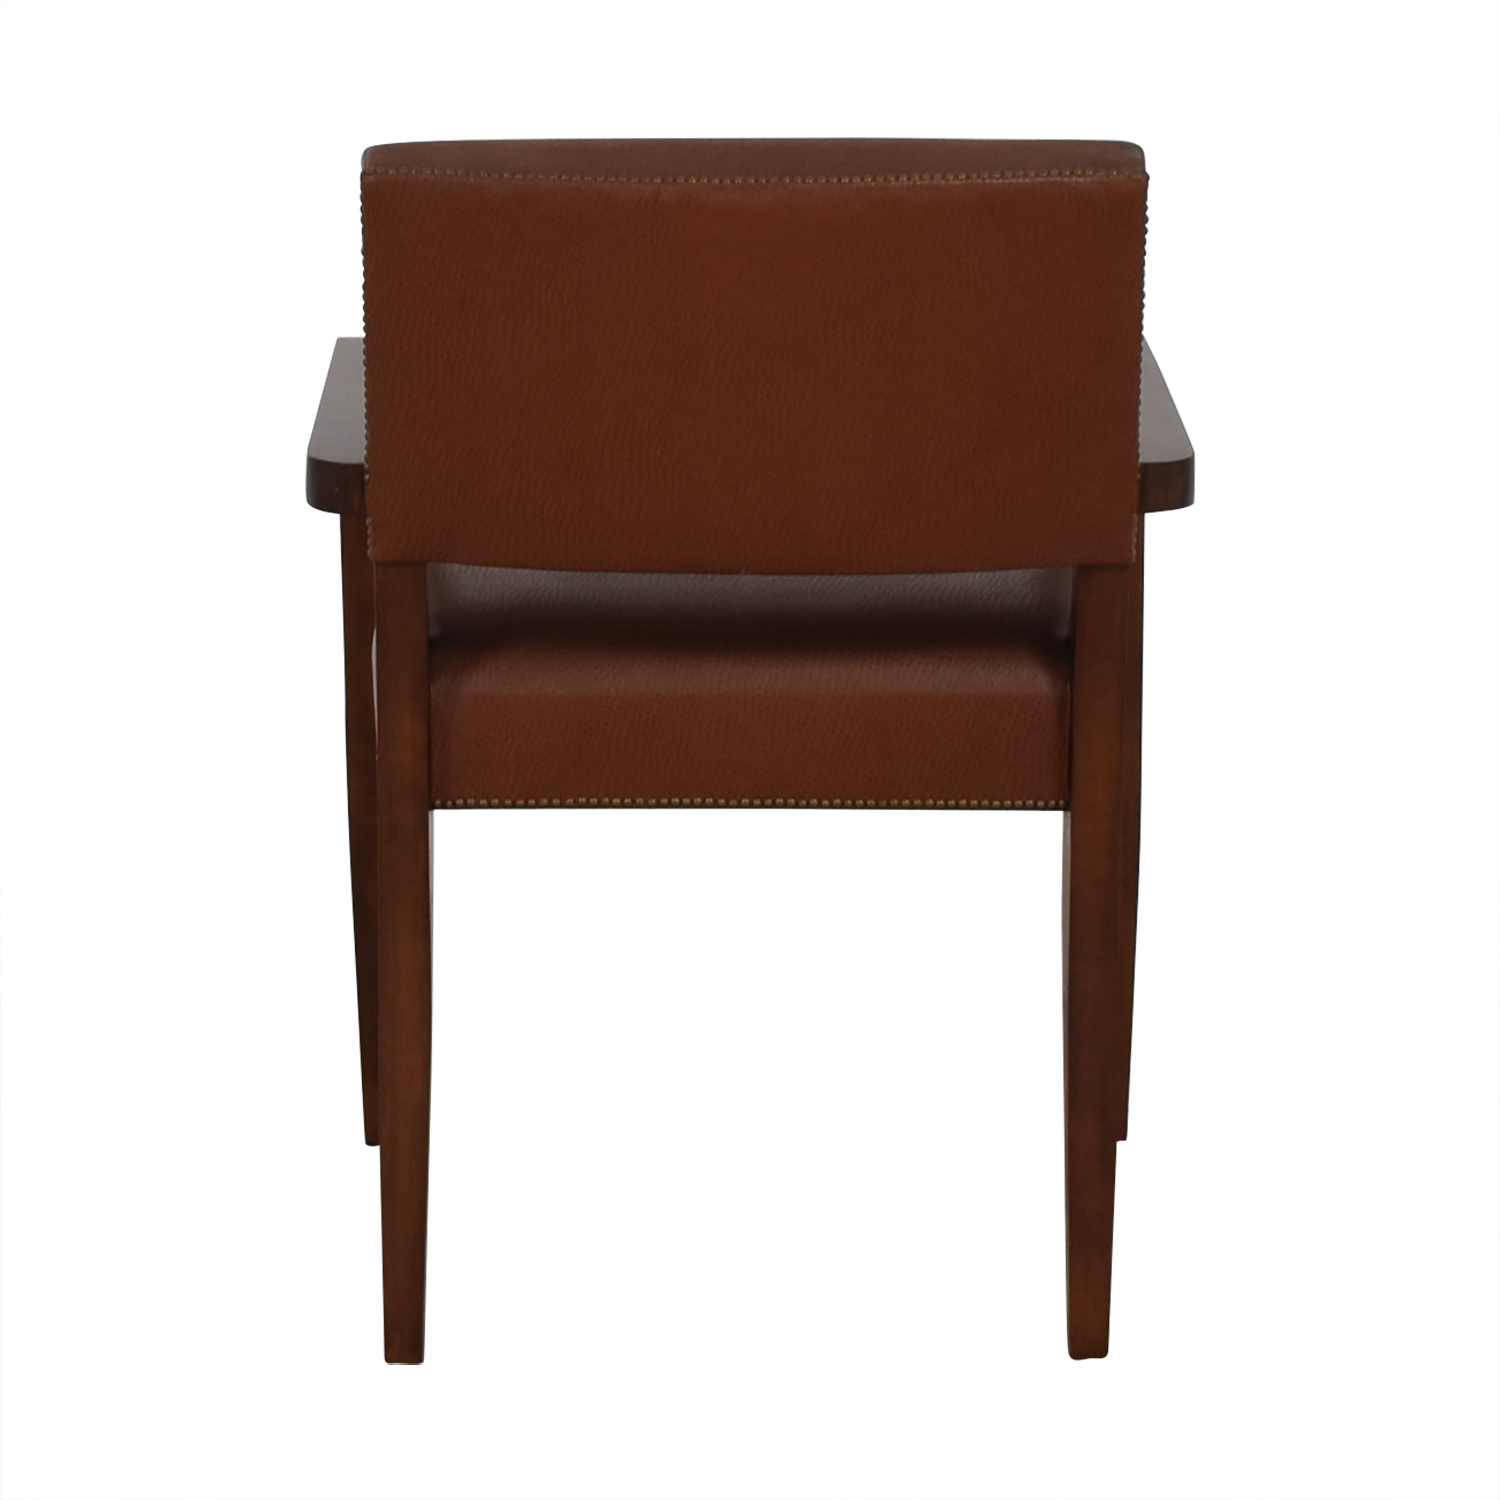 Furniture Masters Furniture Masters Mid Century Accent Chair Accent Chairs